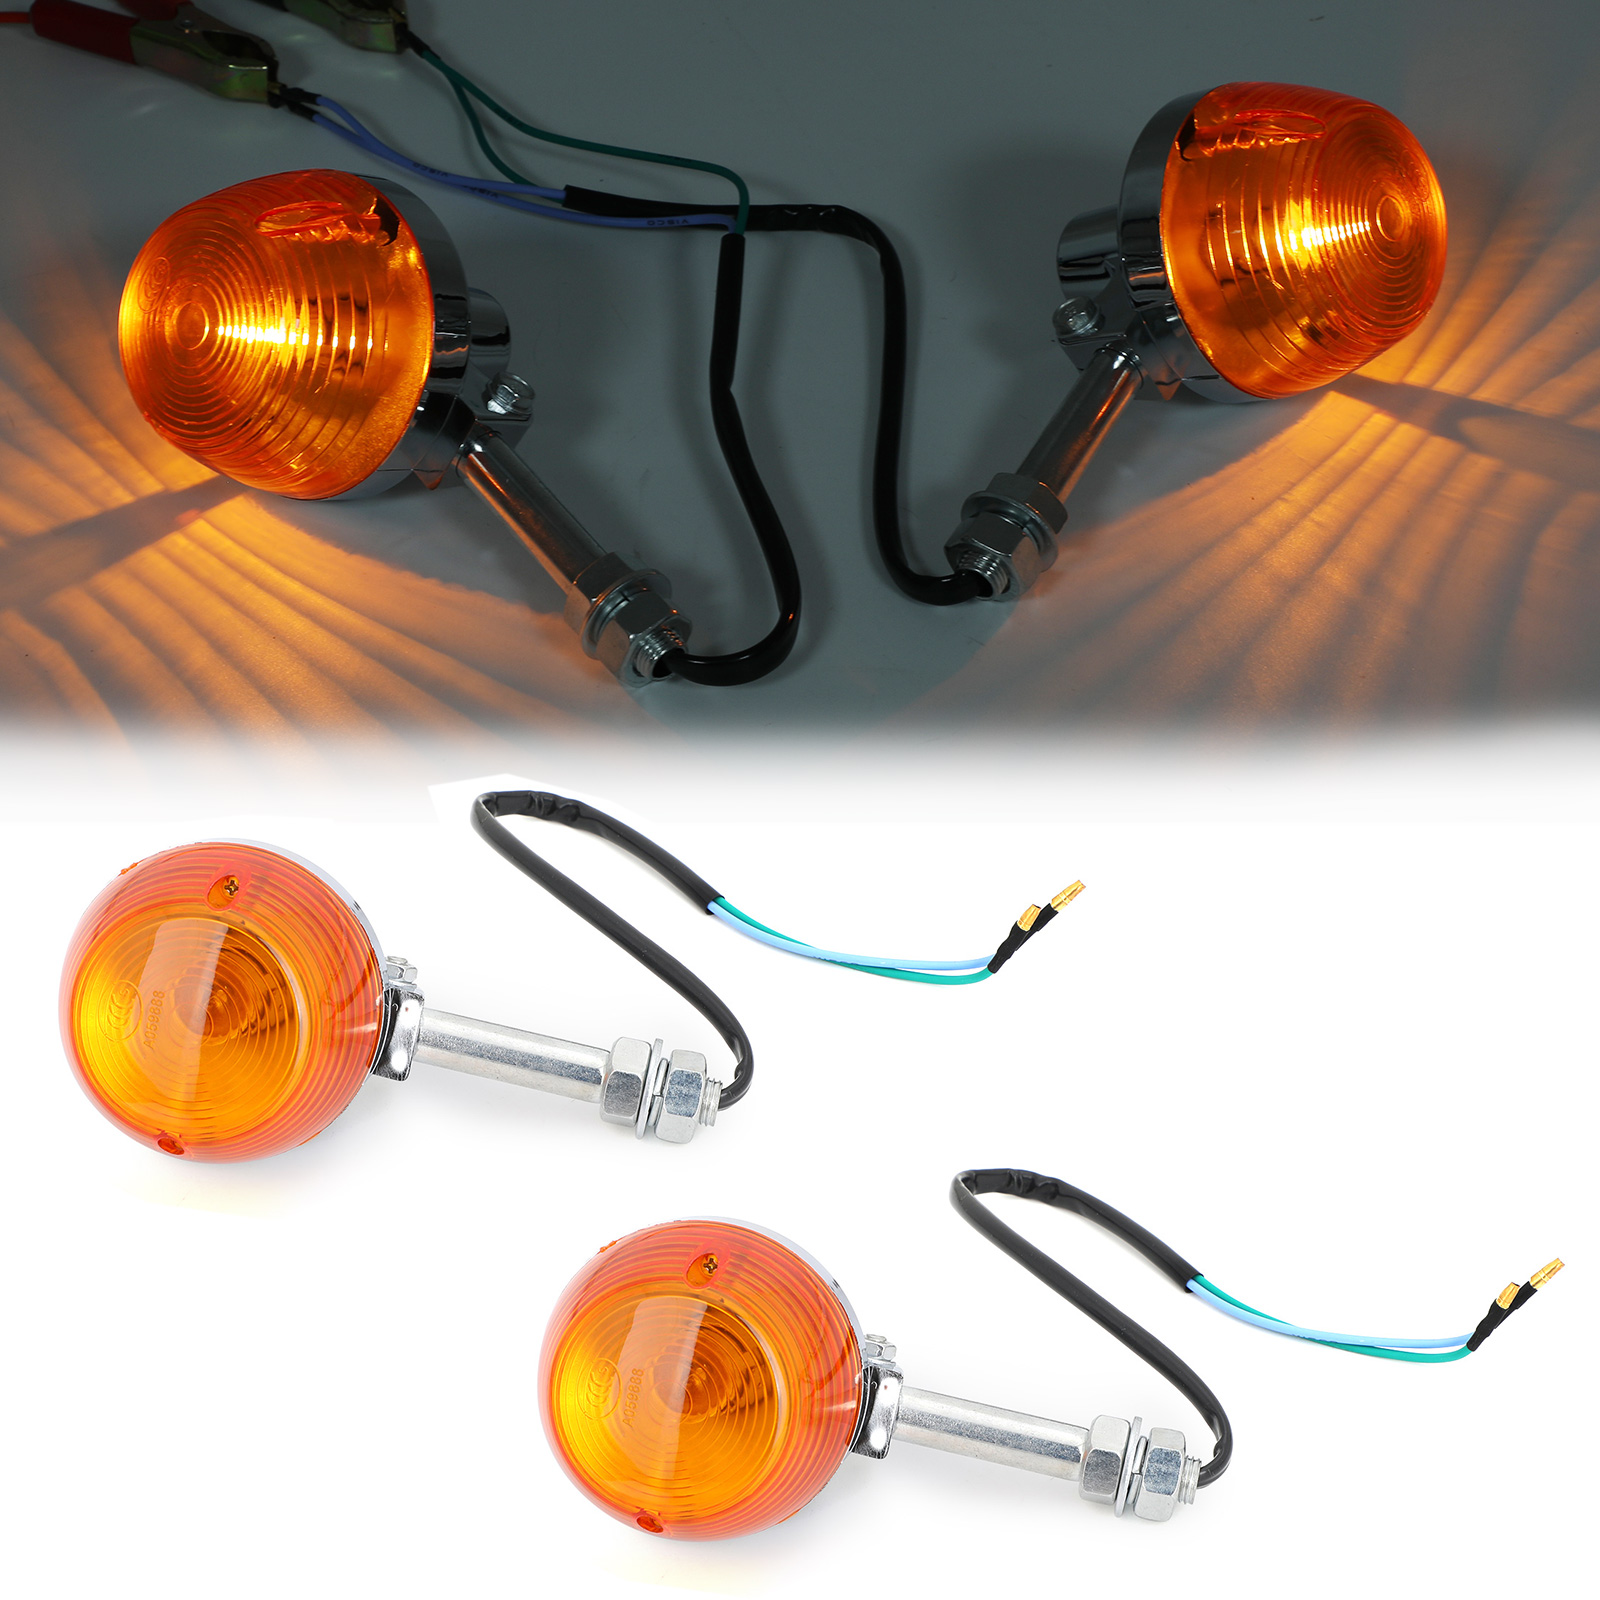 8mm Motorcycle Turn Signal Light For Honda C70 CT70 CT90 XL100 CB350 Hot Sale